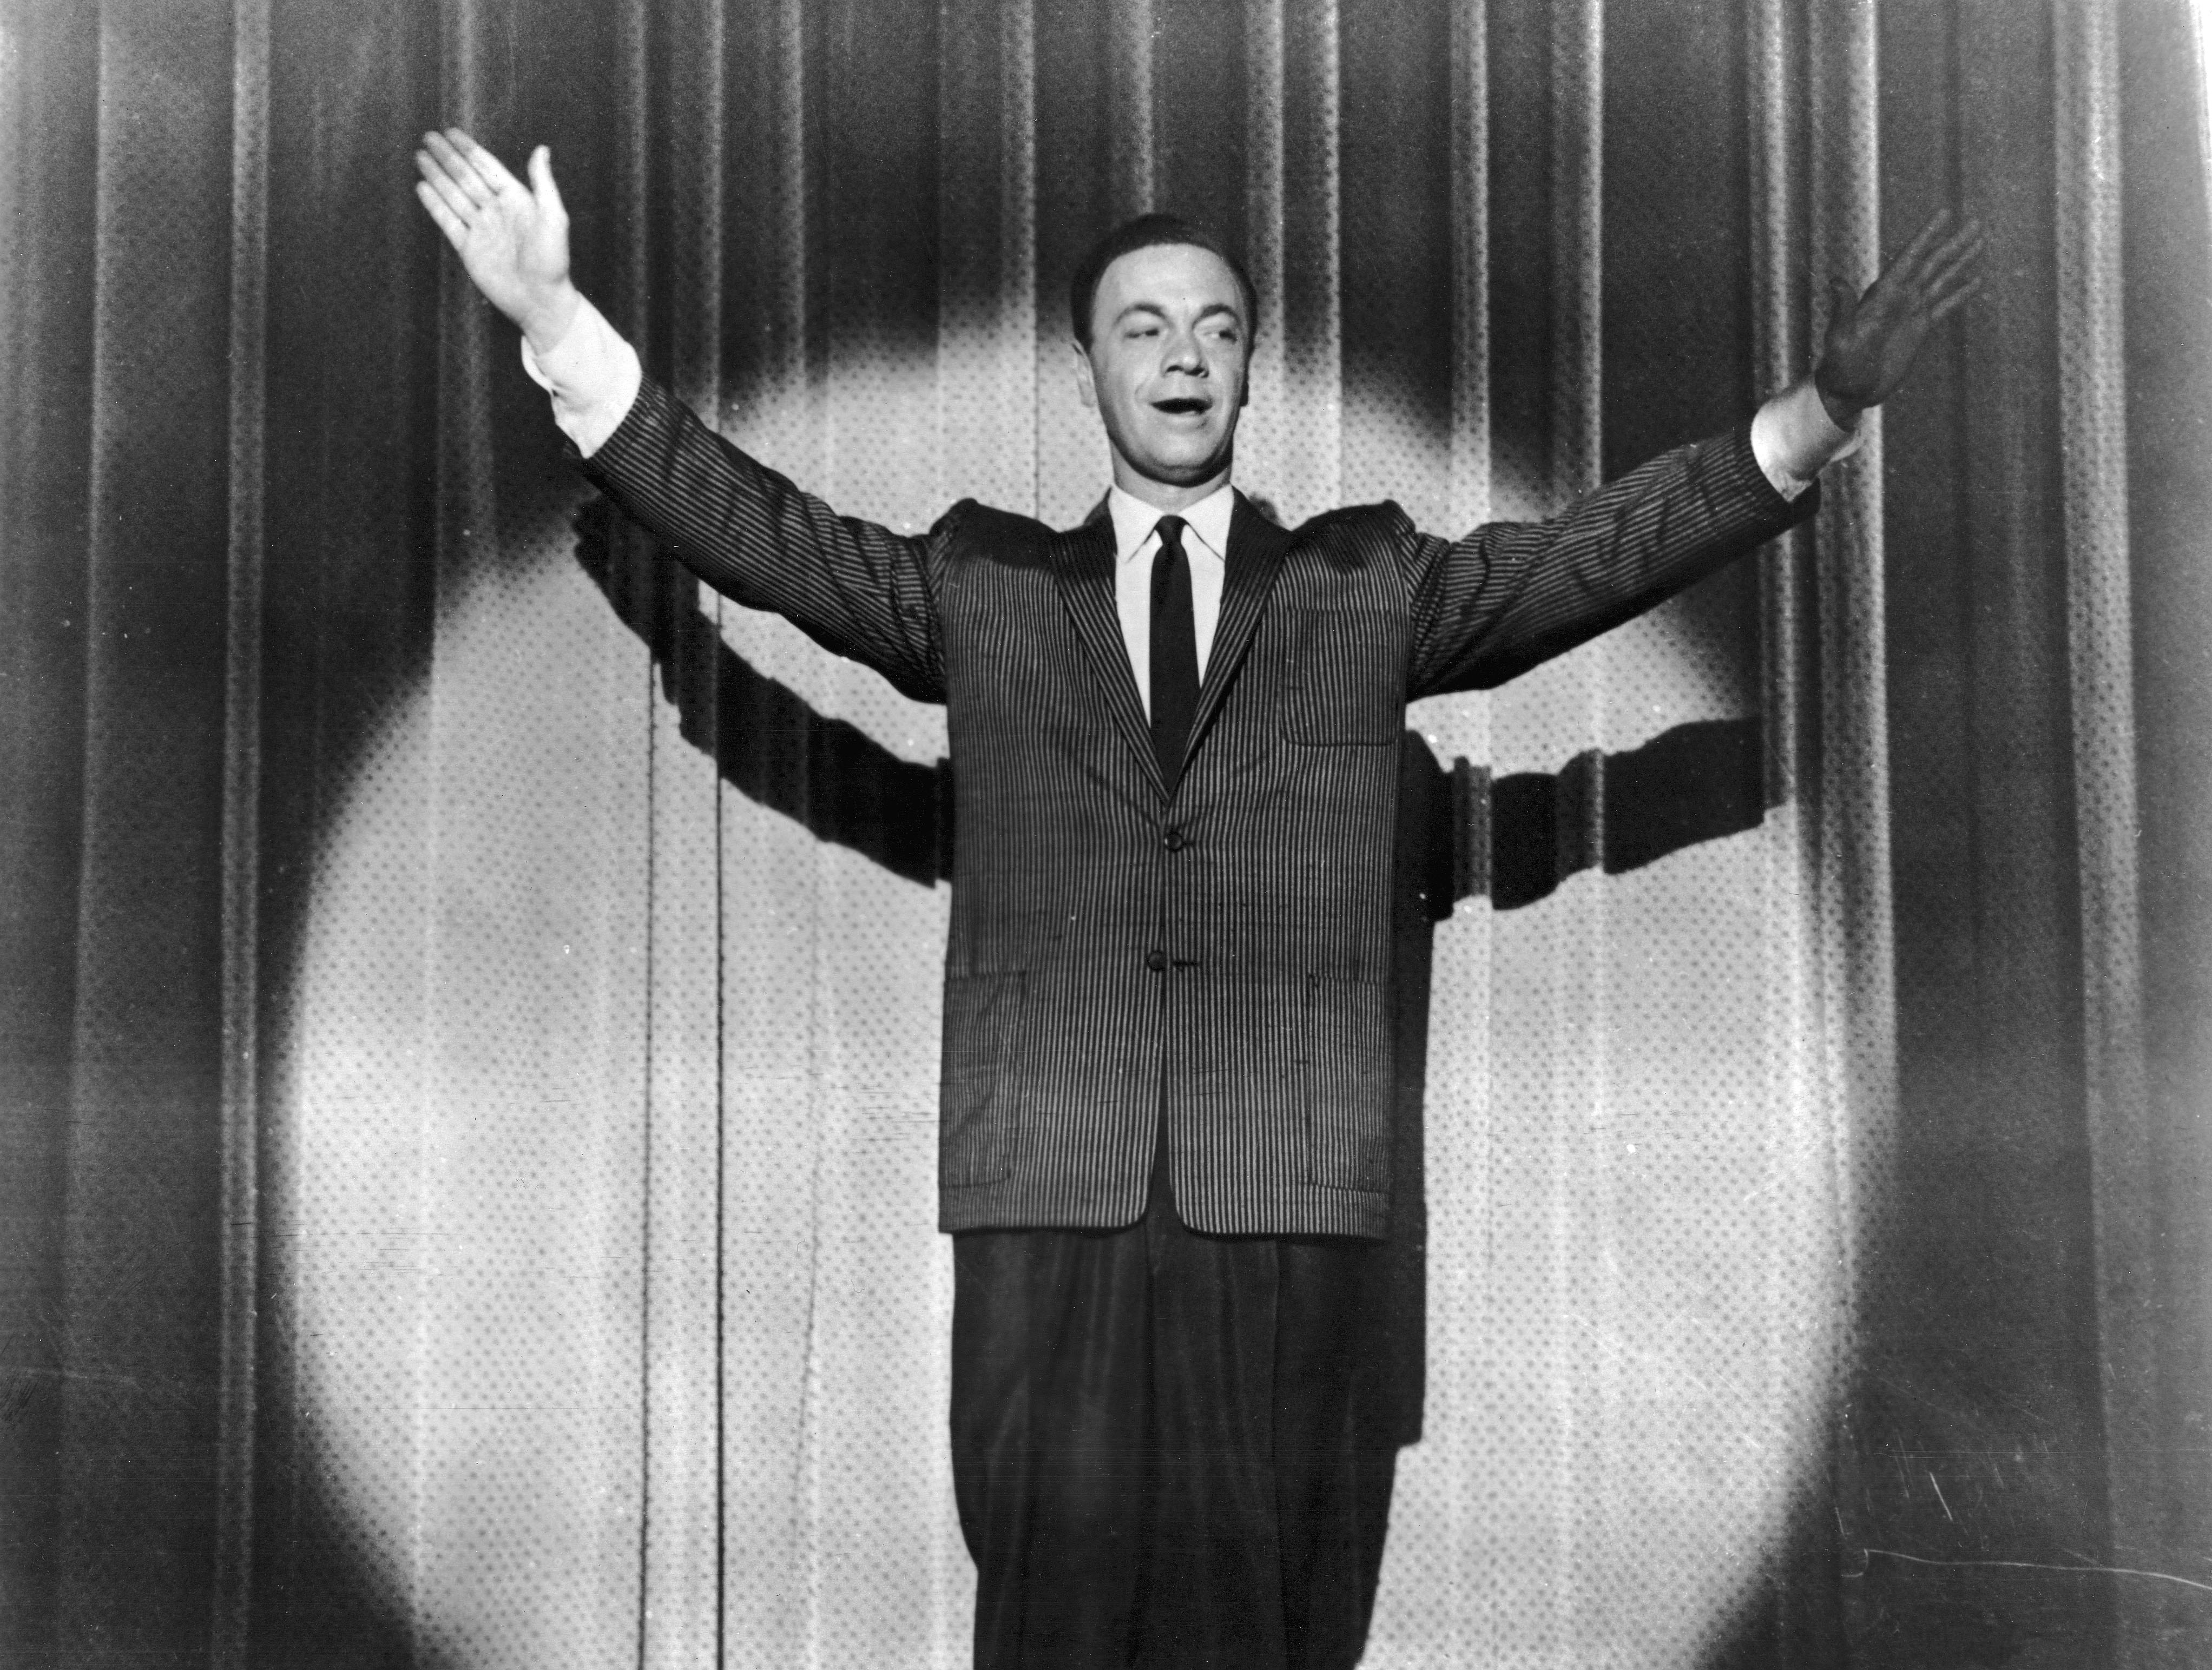 American disc jockey and rock 'n' roll promoter Alan Freed plays himself in the film 'Go, Johnny, Go!', directed by Paul Landres in 1959. Freed's ashes will be removed from the Rock and Roll Hall of Fame and Museum in Cleveland, Ohio on Tuesday, August 5, 2014.